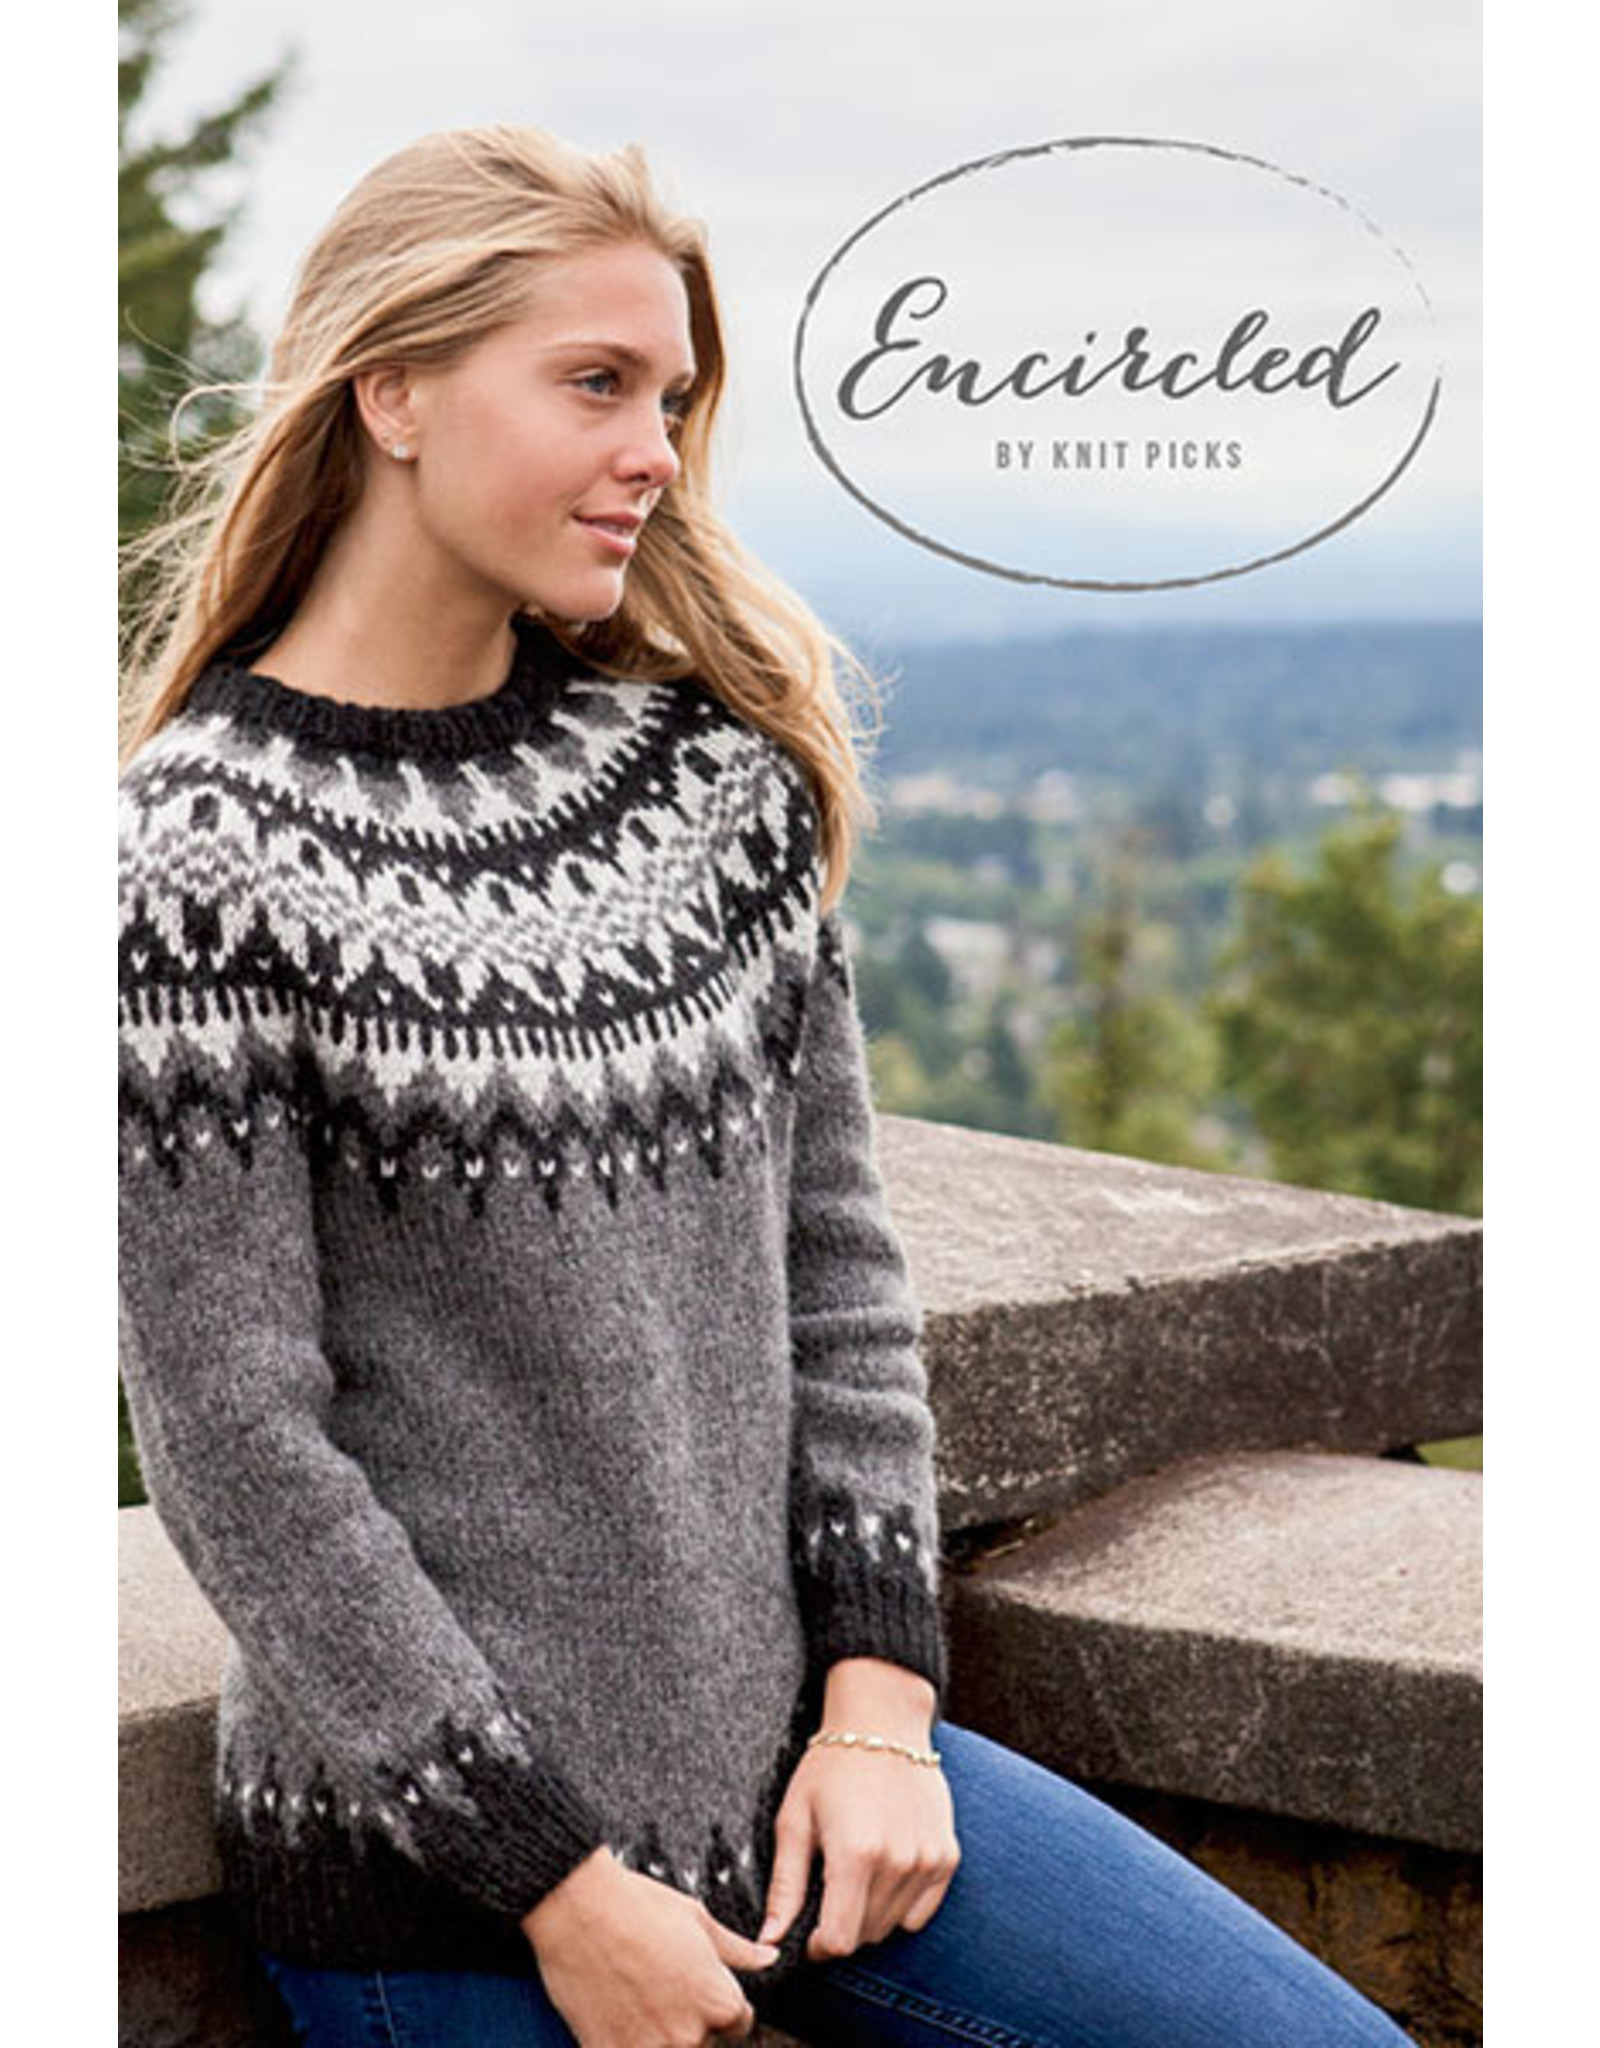 Knit Picks Encircled - Knit Picks - Knitted Pullover Patterns